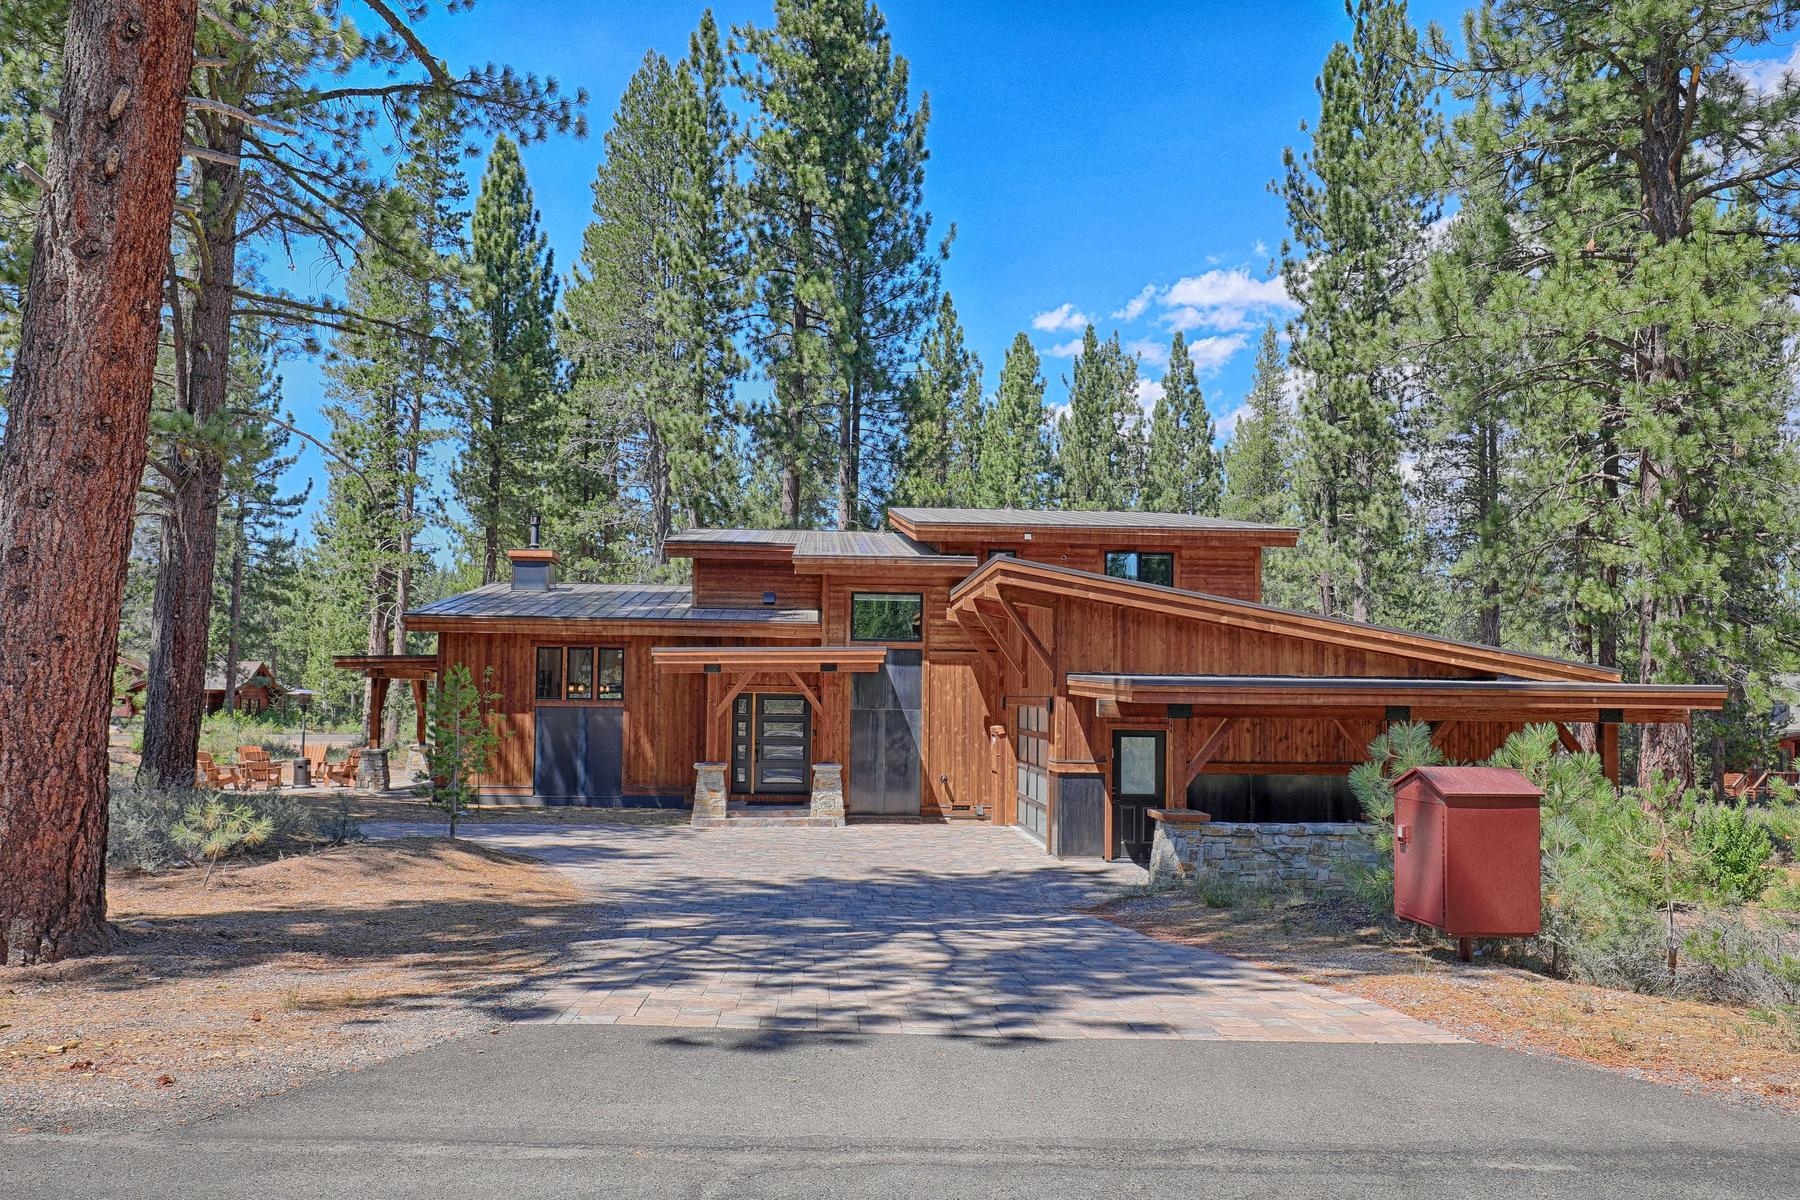 Property for Active at 11090 Henness Road, Truckee, Ca 96161 11090 Henness Road Truckee, California 96161 United States